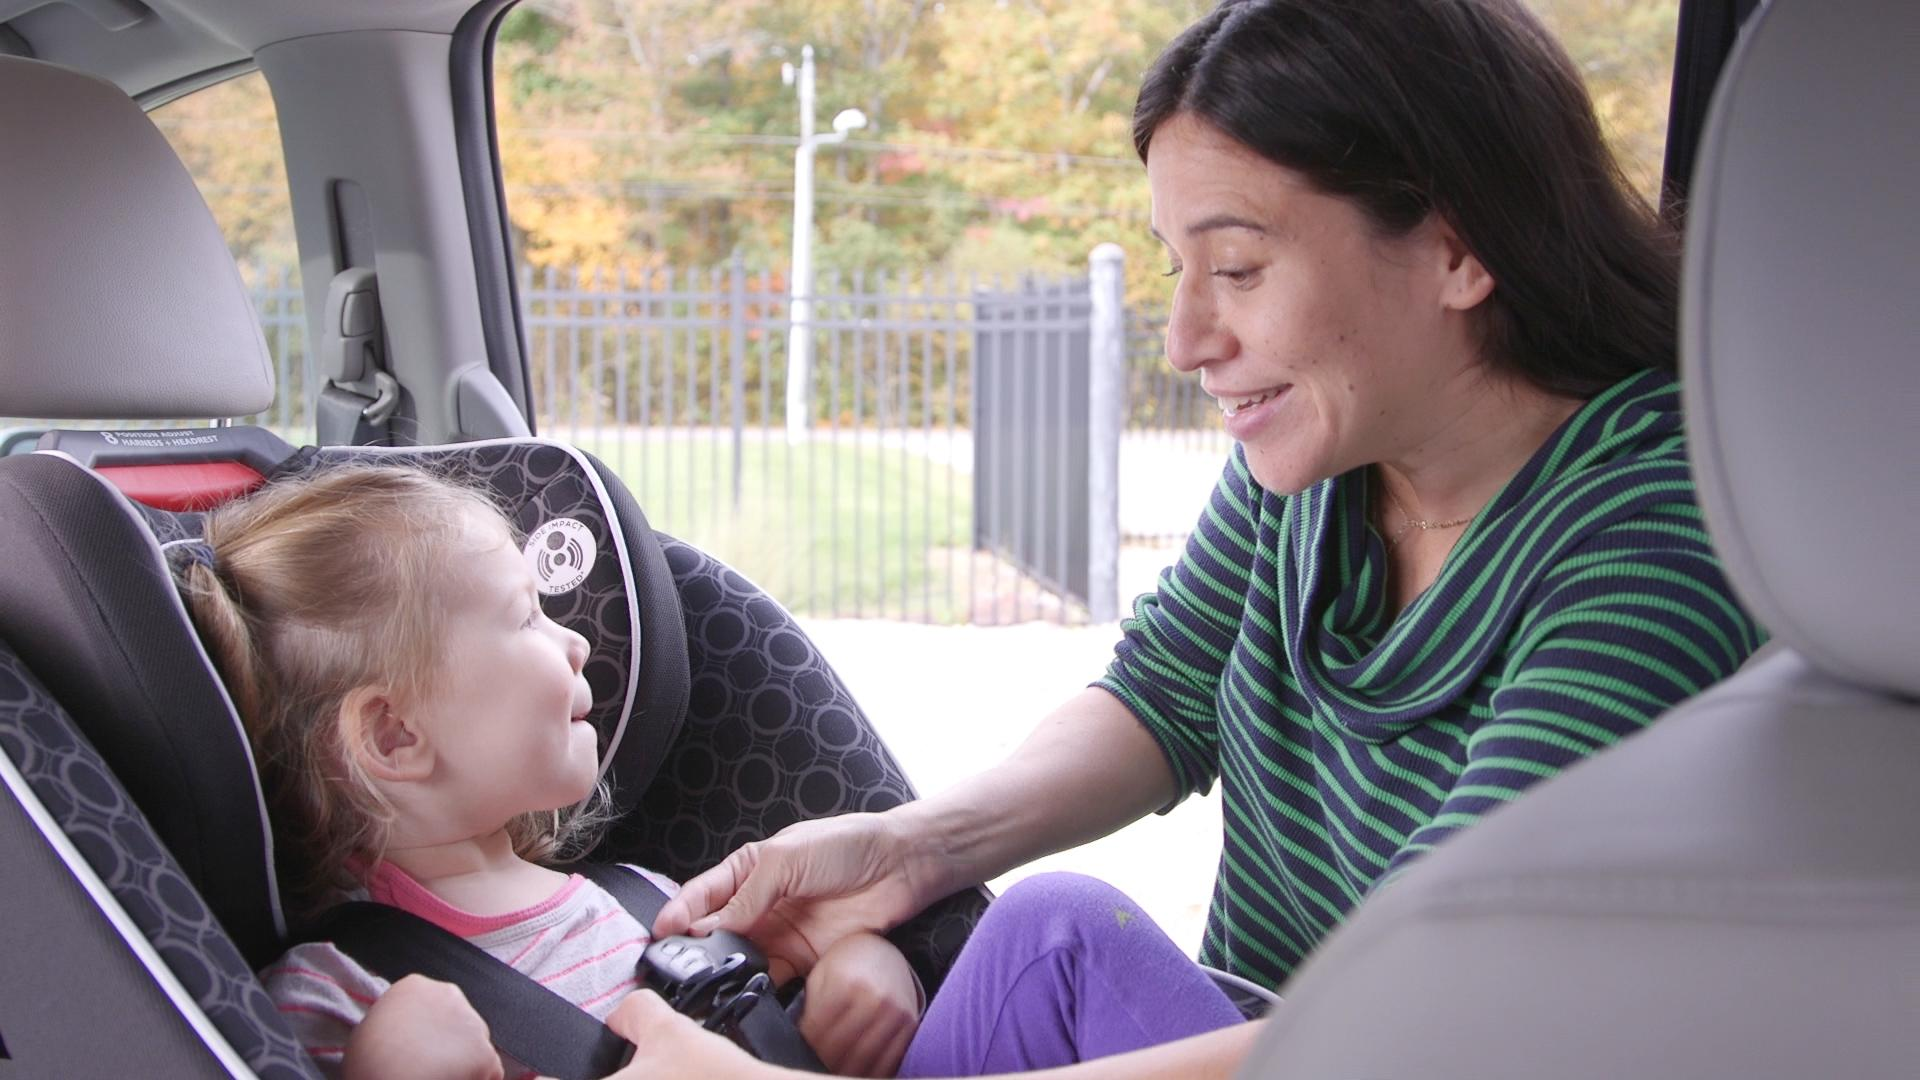 Experts Decide to Drop Age Limit of Rear-Facing Car Seats